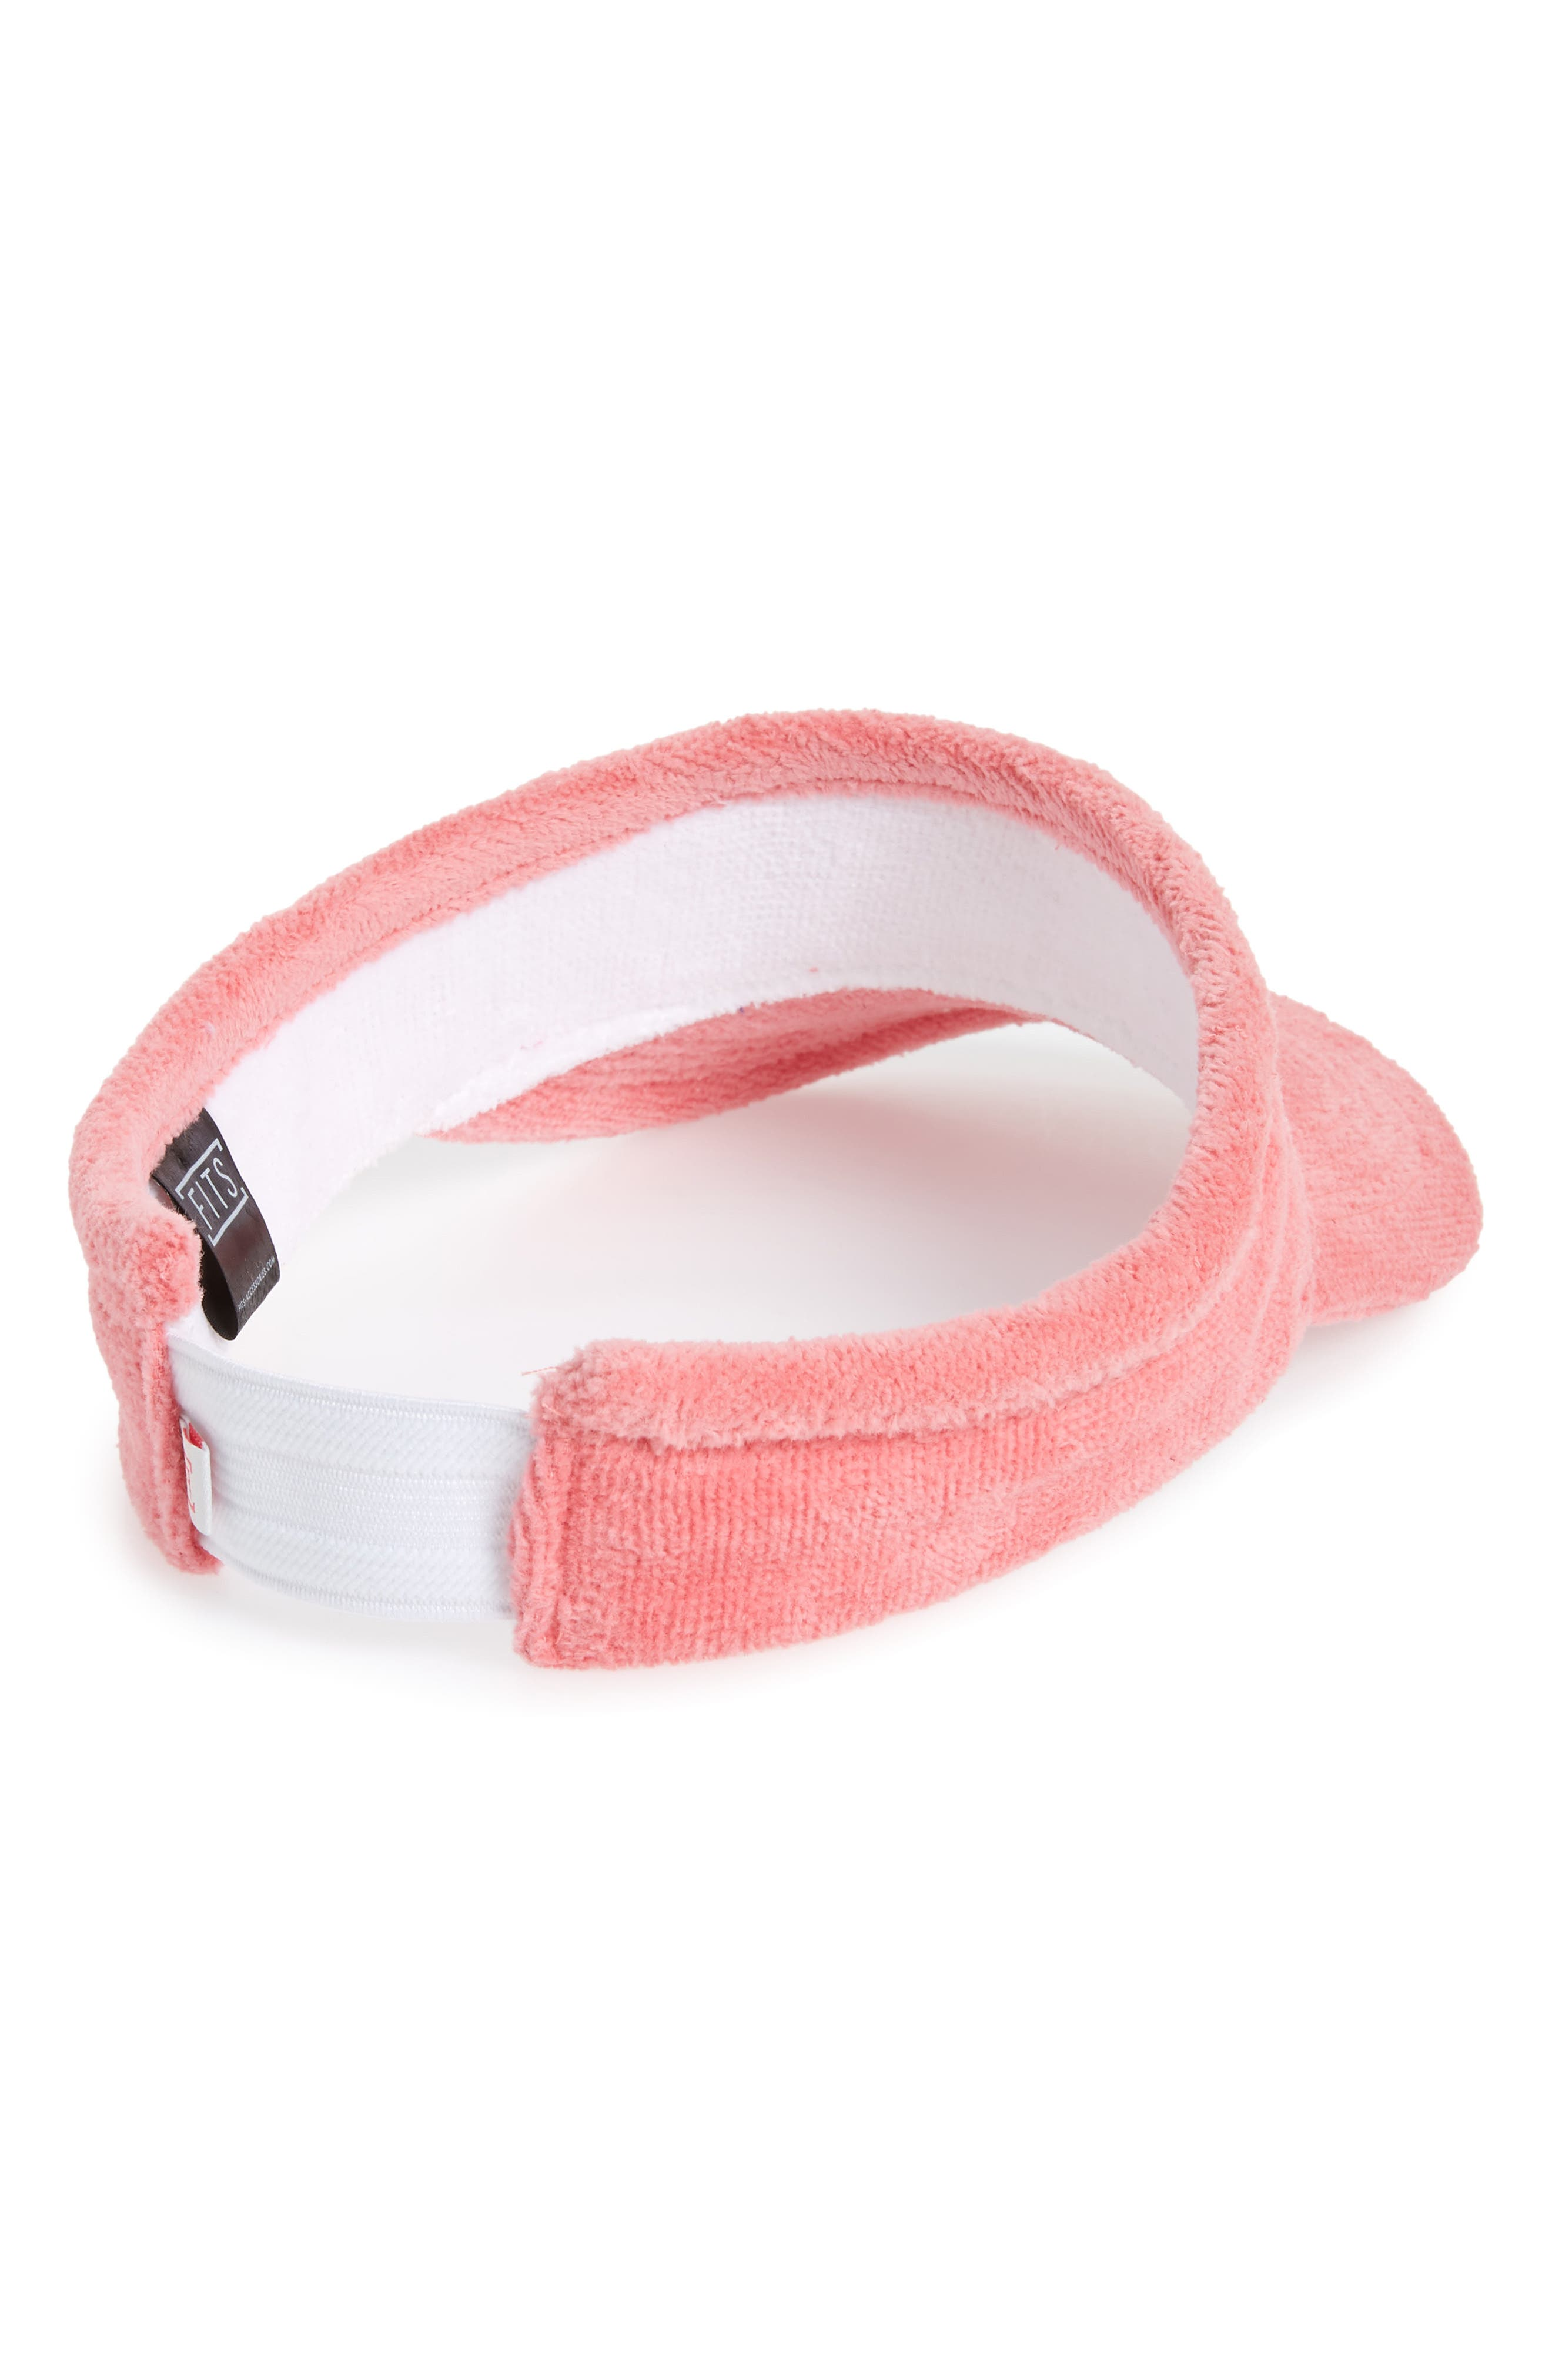 French Terry Visor,                             Alternate thumbnail 2, color,                             Dusty Pink